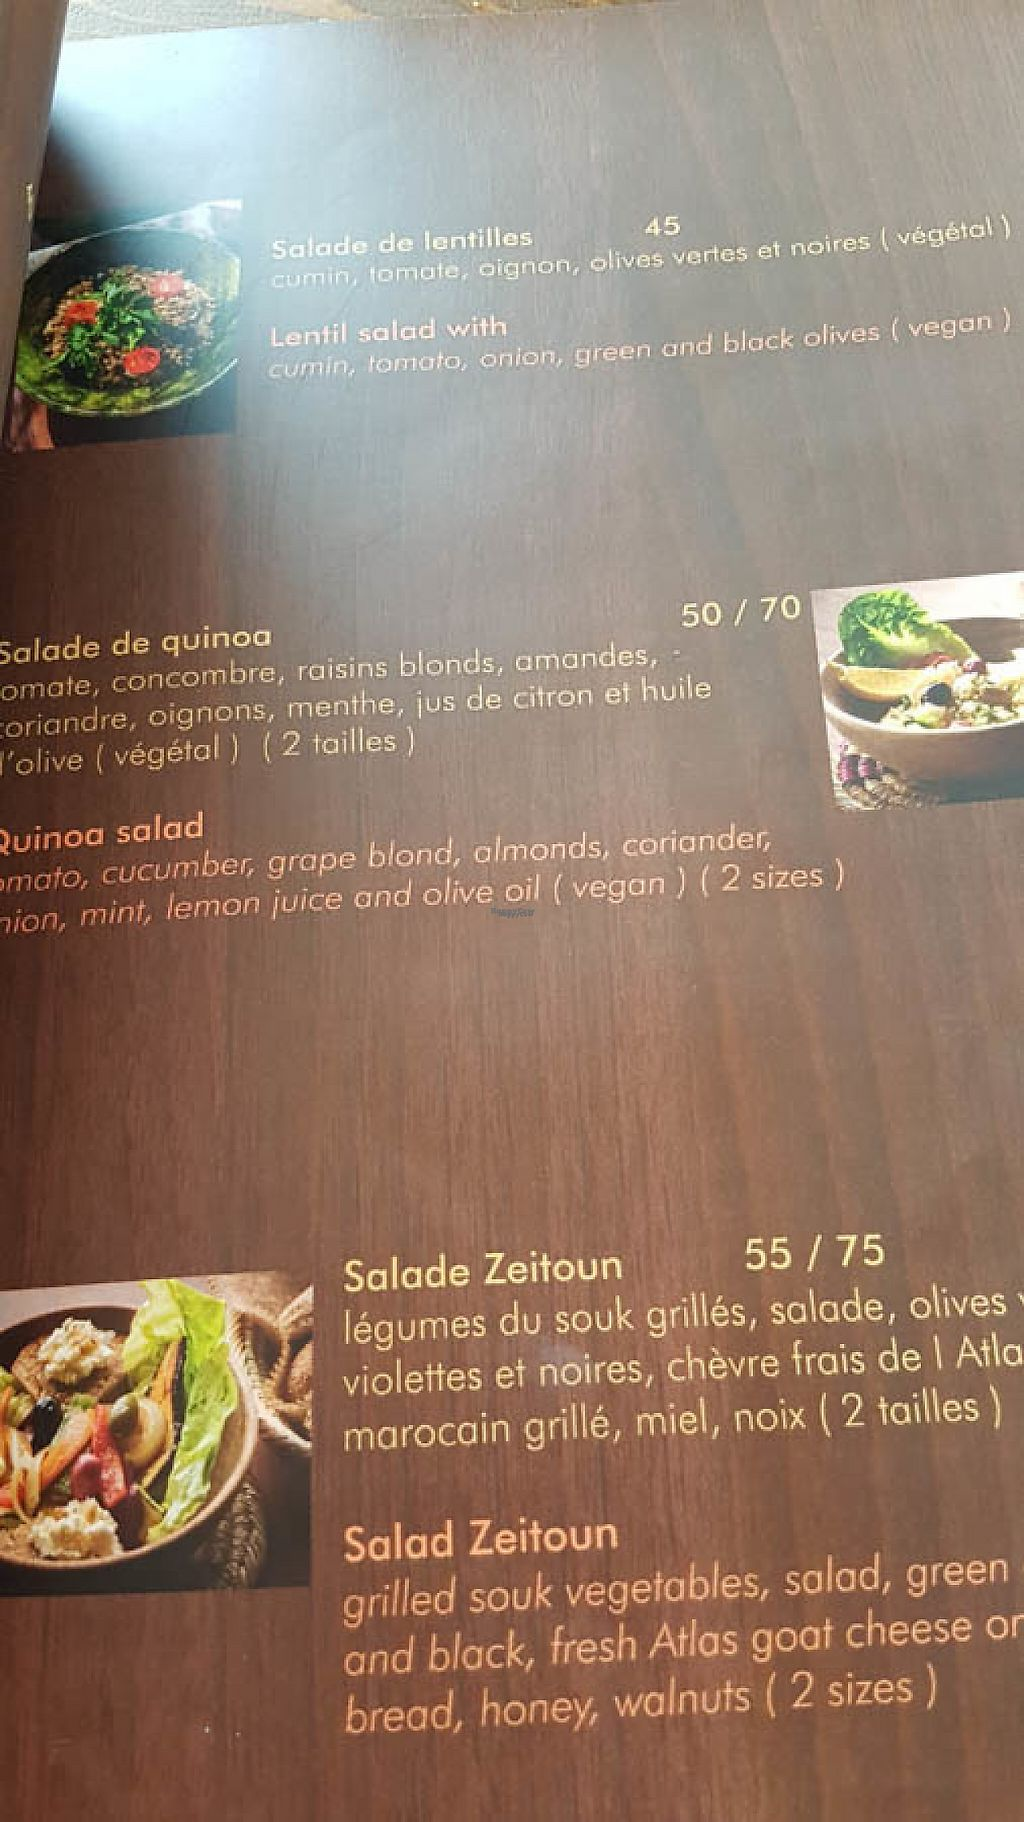 "Photo of Zeitoun Cafe  by <a href=""/members/profile/EmmaPamley-Liddell"">EmmaPamley-Liddell</a> <br/>Menu of salads <br/> March 8, 2017  - <a href='/contact/abuse/image/88282/234313'>Report</a>"